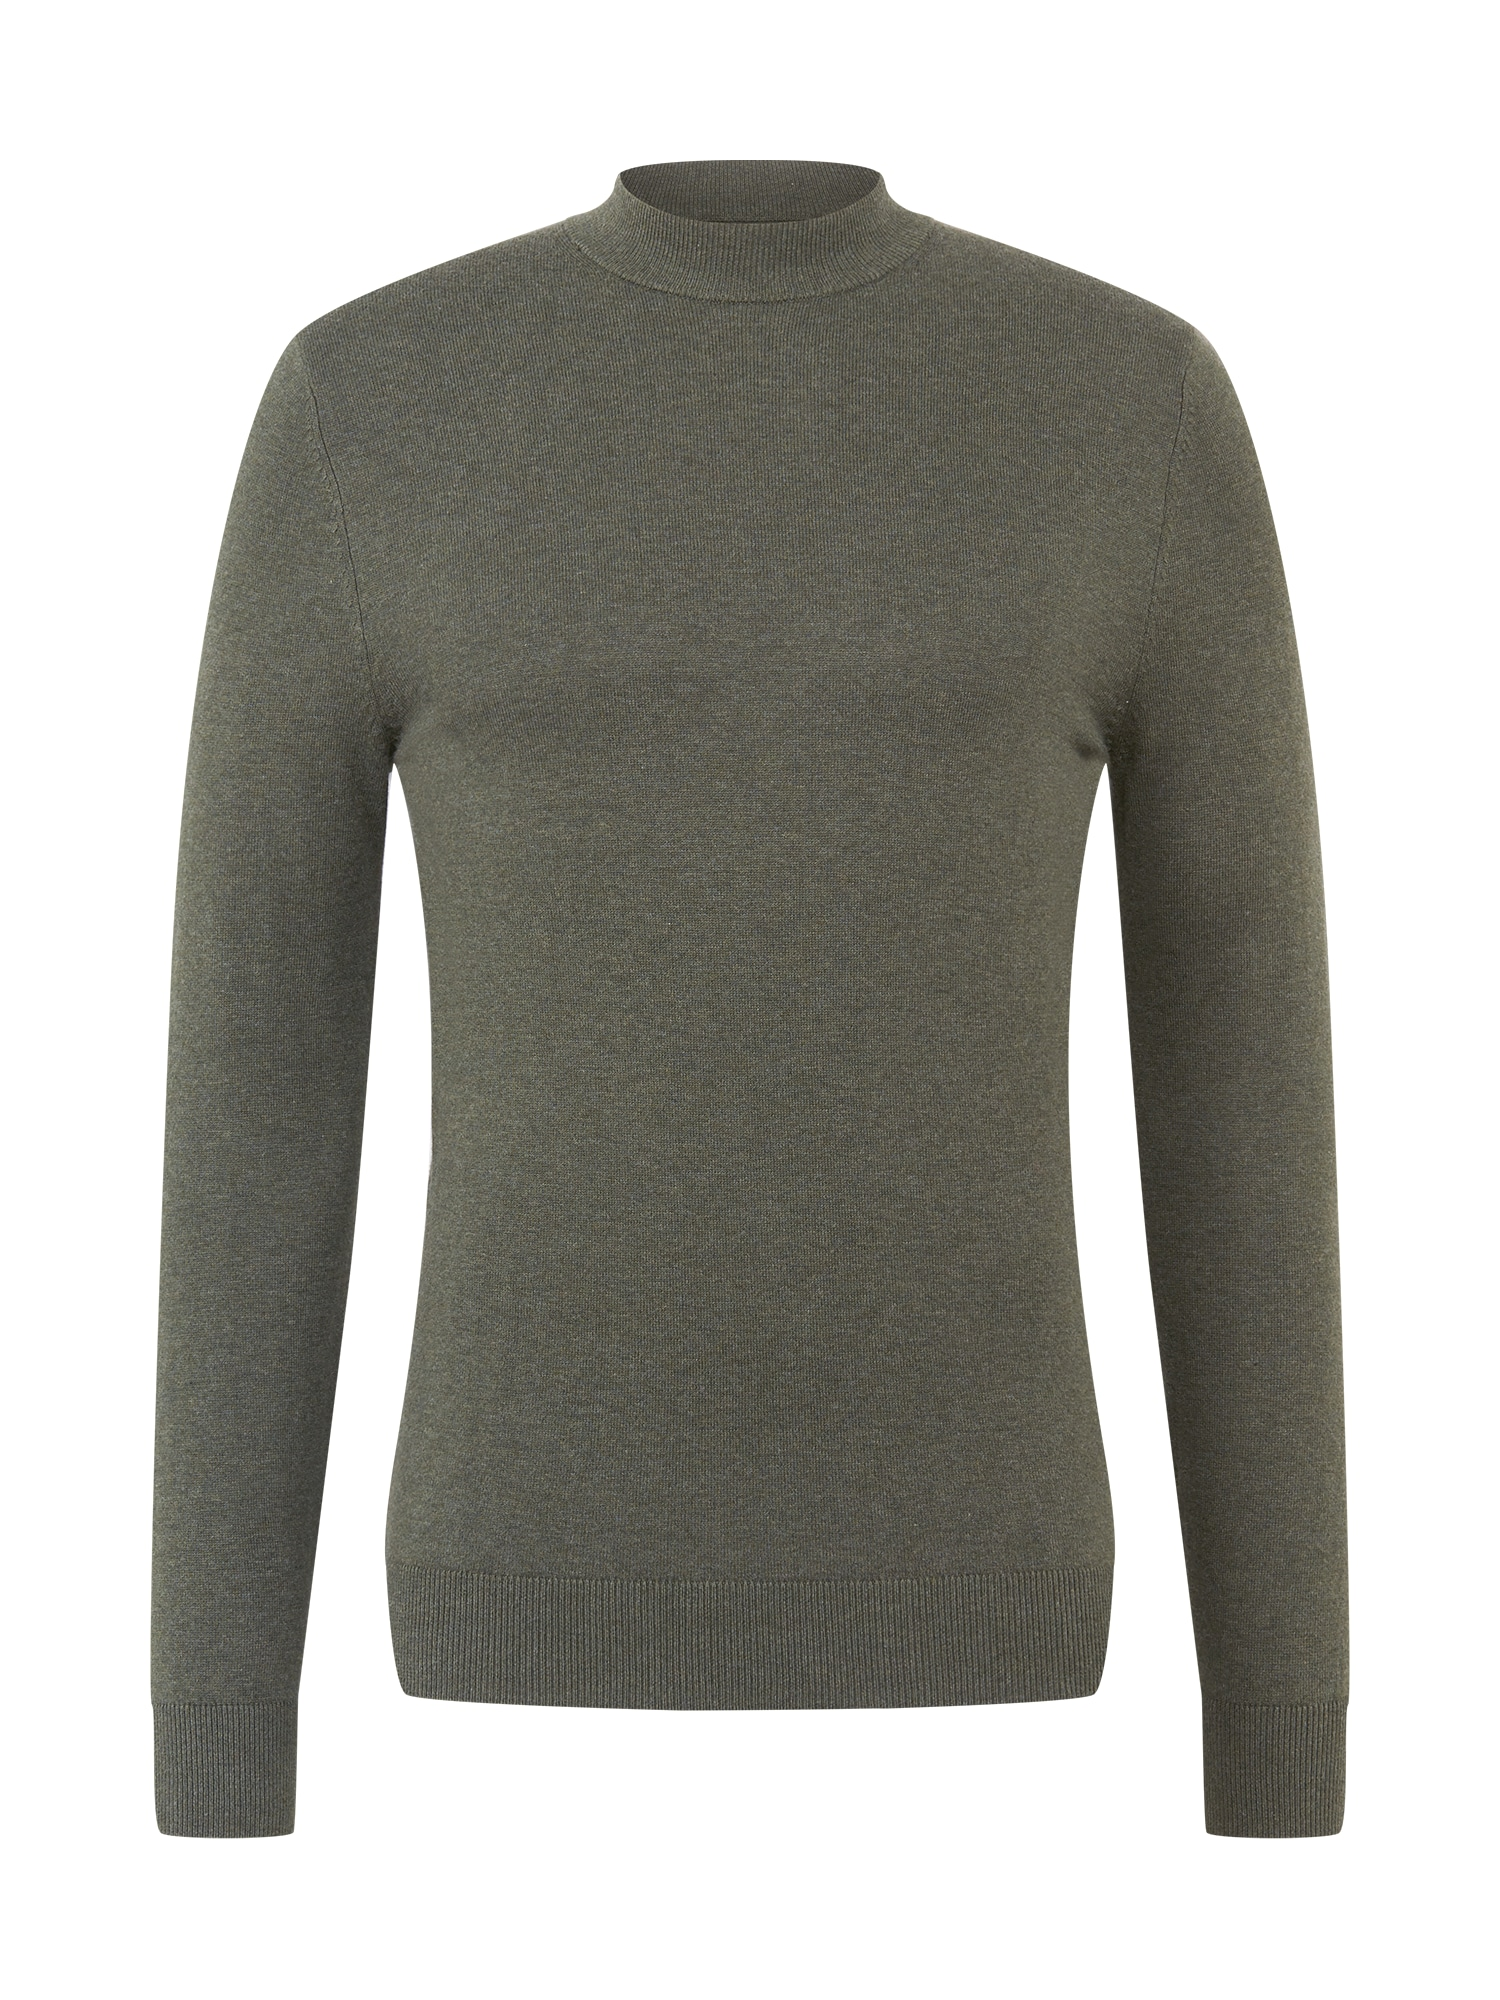 BURTON MENSWEAR LONDON Svetr 'TURTLE'  khaki